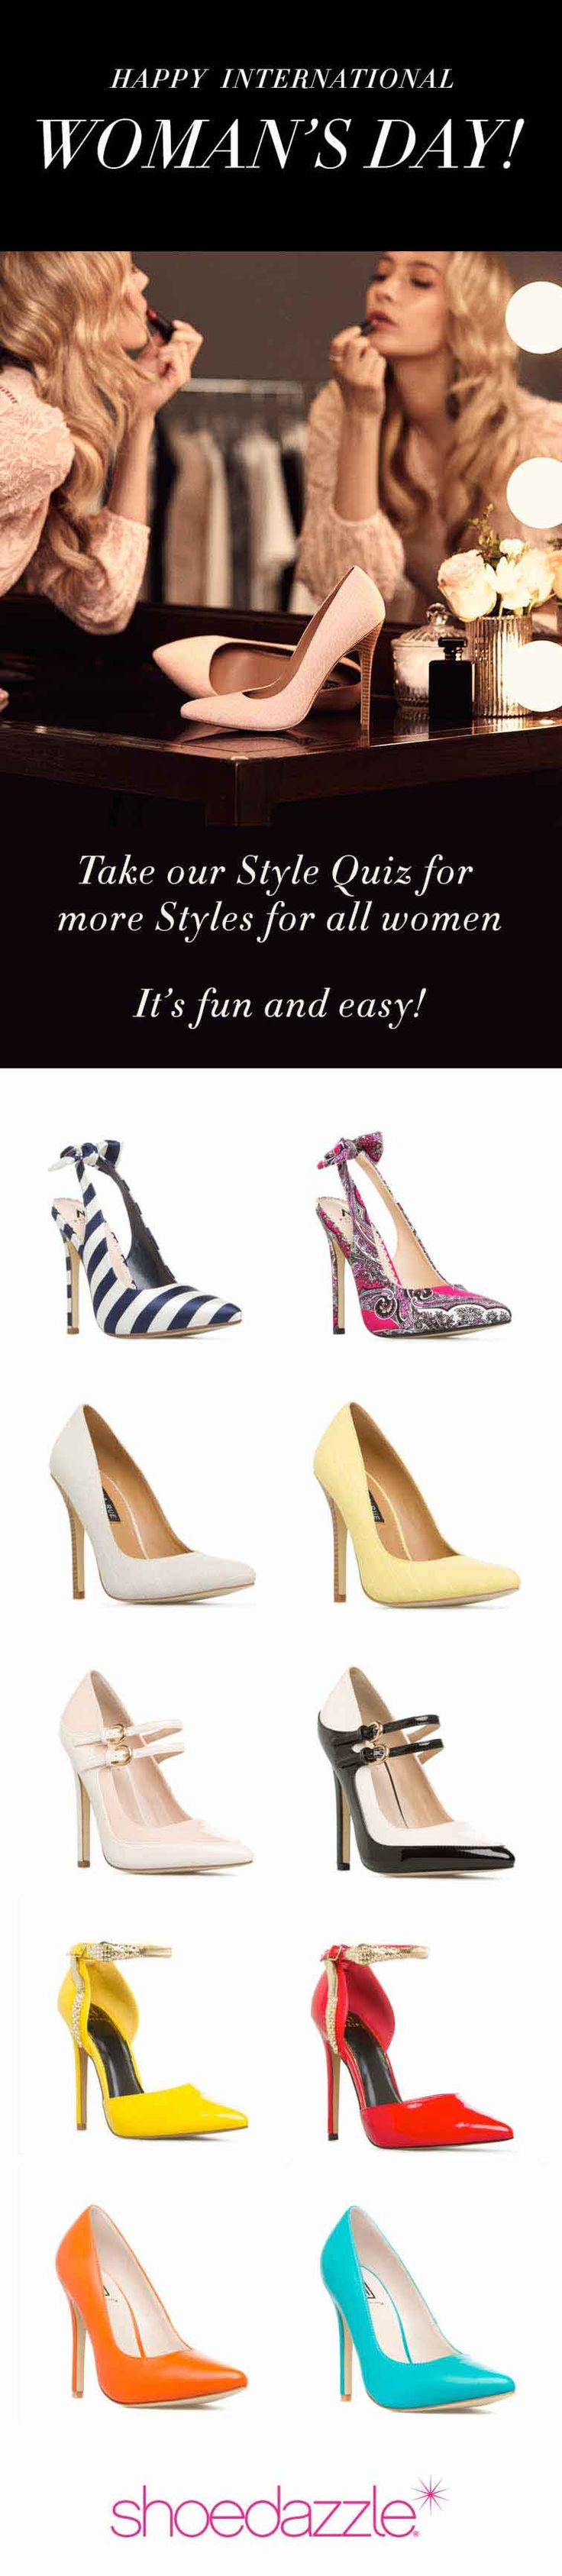 SHOEDAZZLE EXCLUSIVE VIP OFFER - $10 shoes! Limited Time Only, ends 5/31/2016. As a VIP, you'll enjoy a new boutique of personalized styles each month, as well as exclusive pricing and free shipping on orders over $49. Don't think you'll need something new every month? No problem – just click 'Skip The Month' in your account by the 5th and you won't be charged. But this deal won't last forever! Take the Style Profile Quiz today to get this exclusive offer.